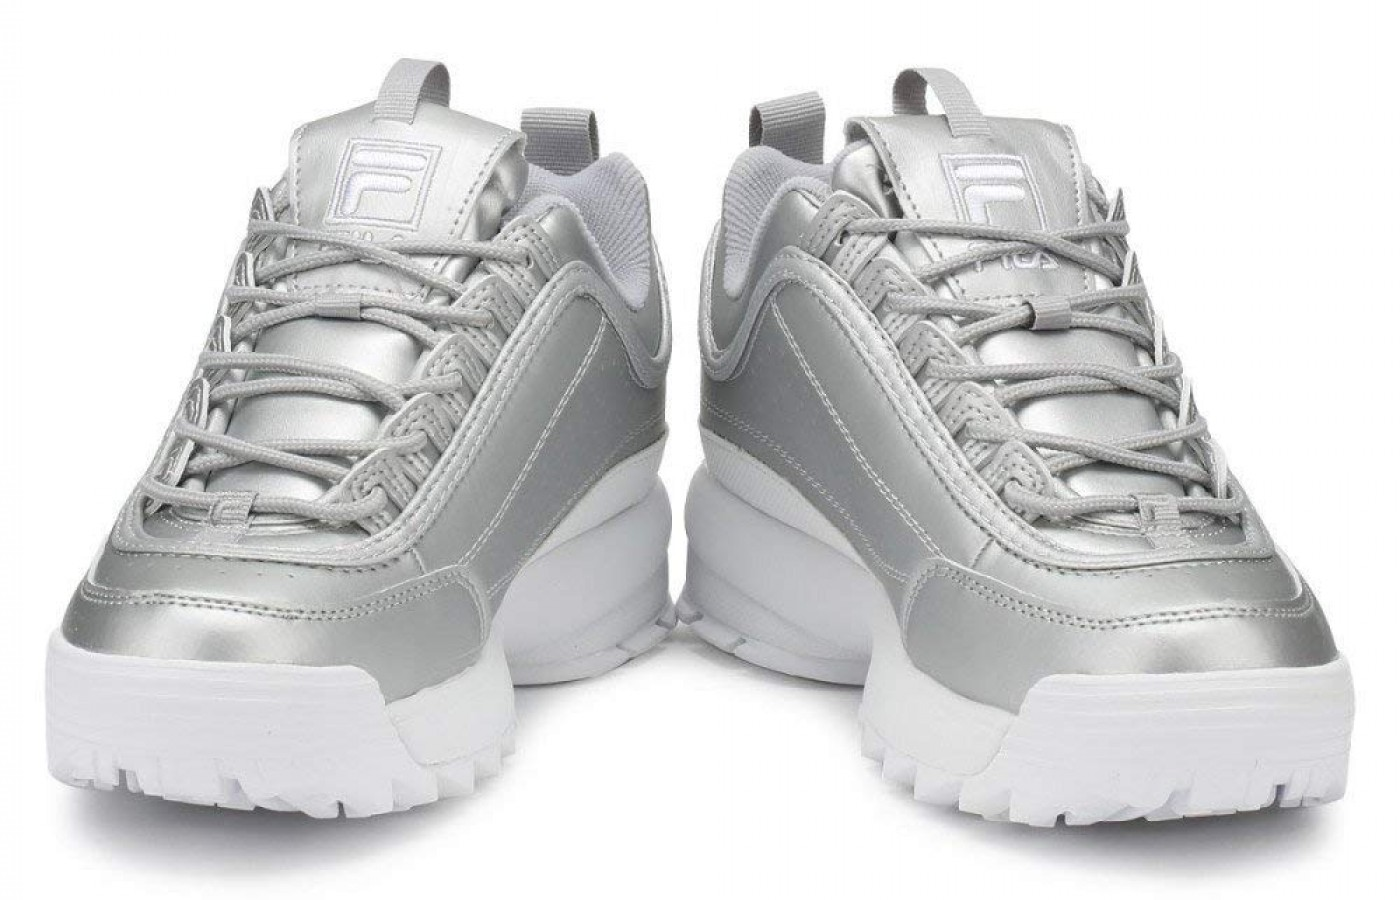 077e6df17742 Fila Disruptor 2 Reviewed for Performance in 2019